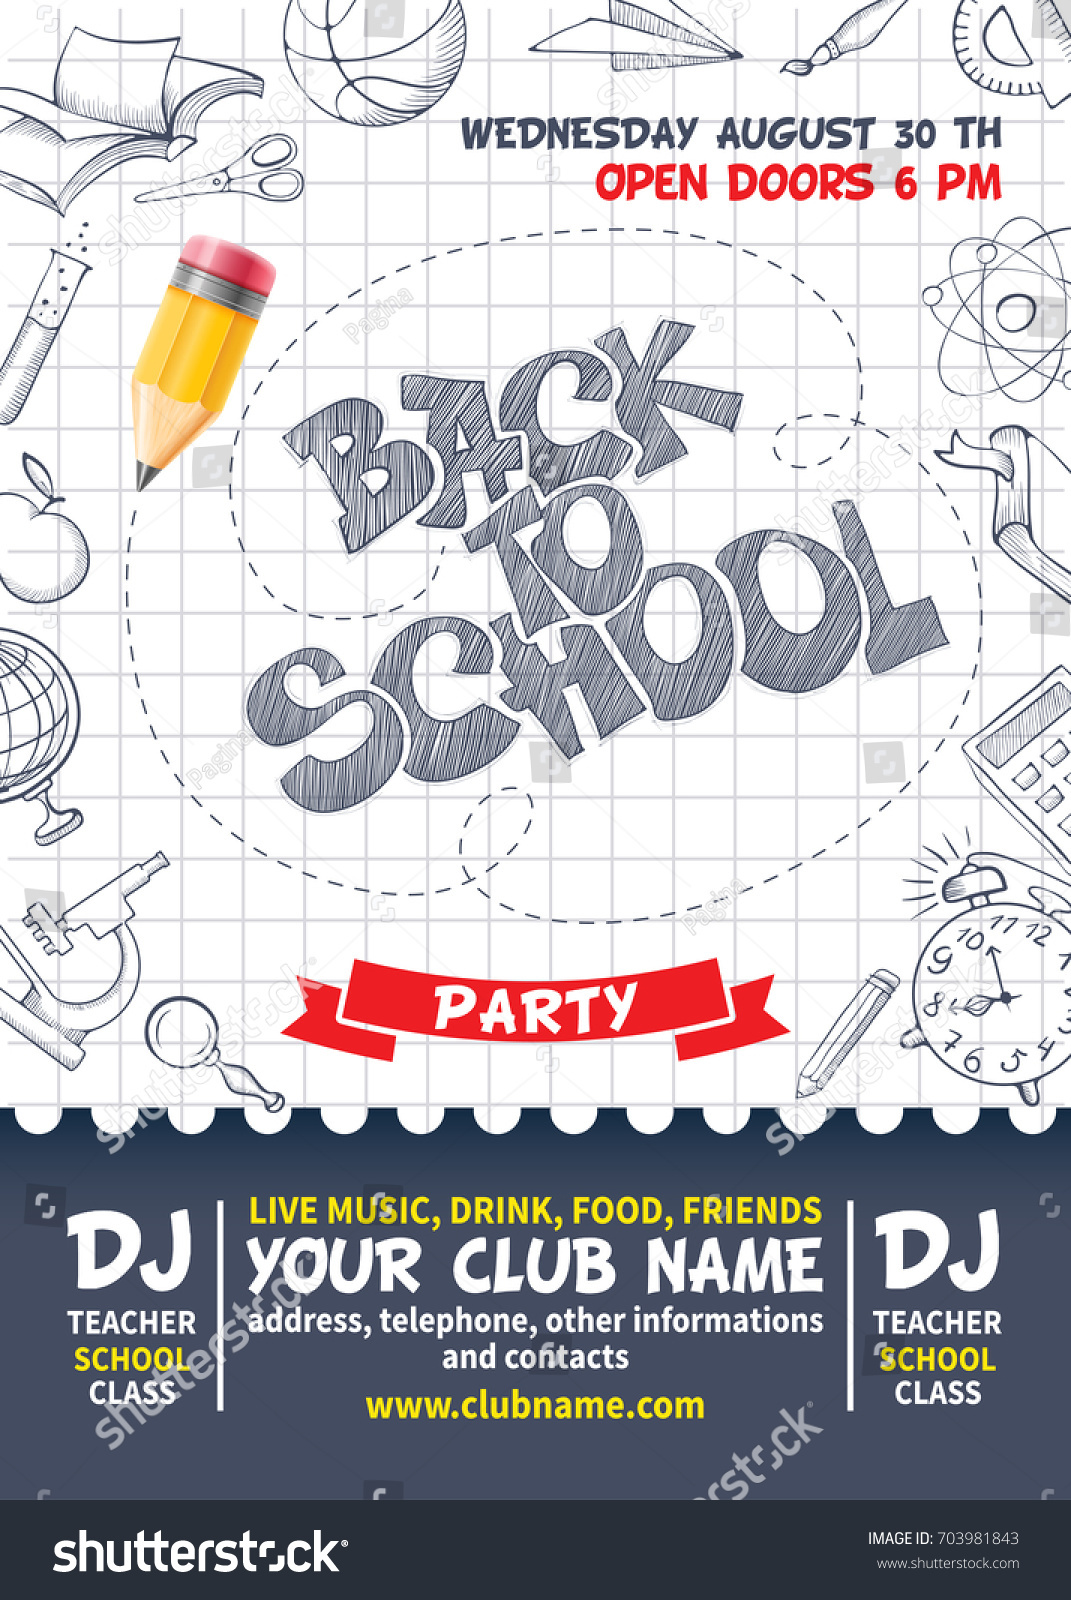 Back School Party Poster Template Design Stock Vector (Royalty Free ...